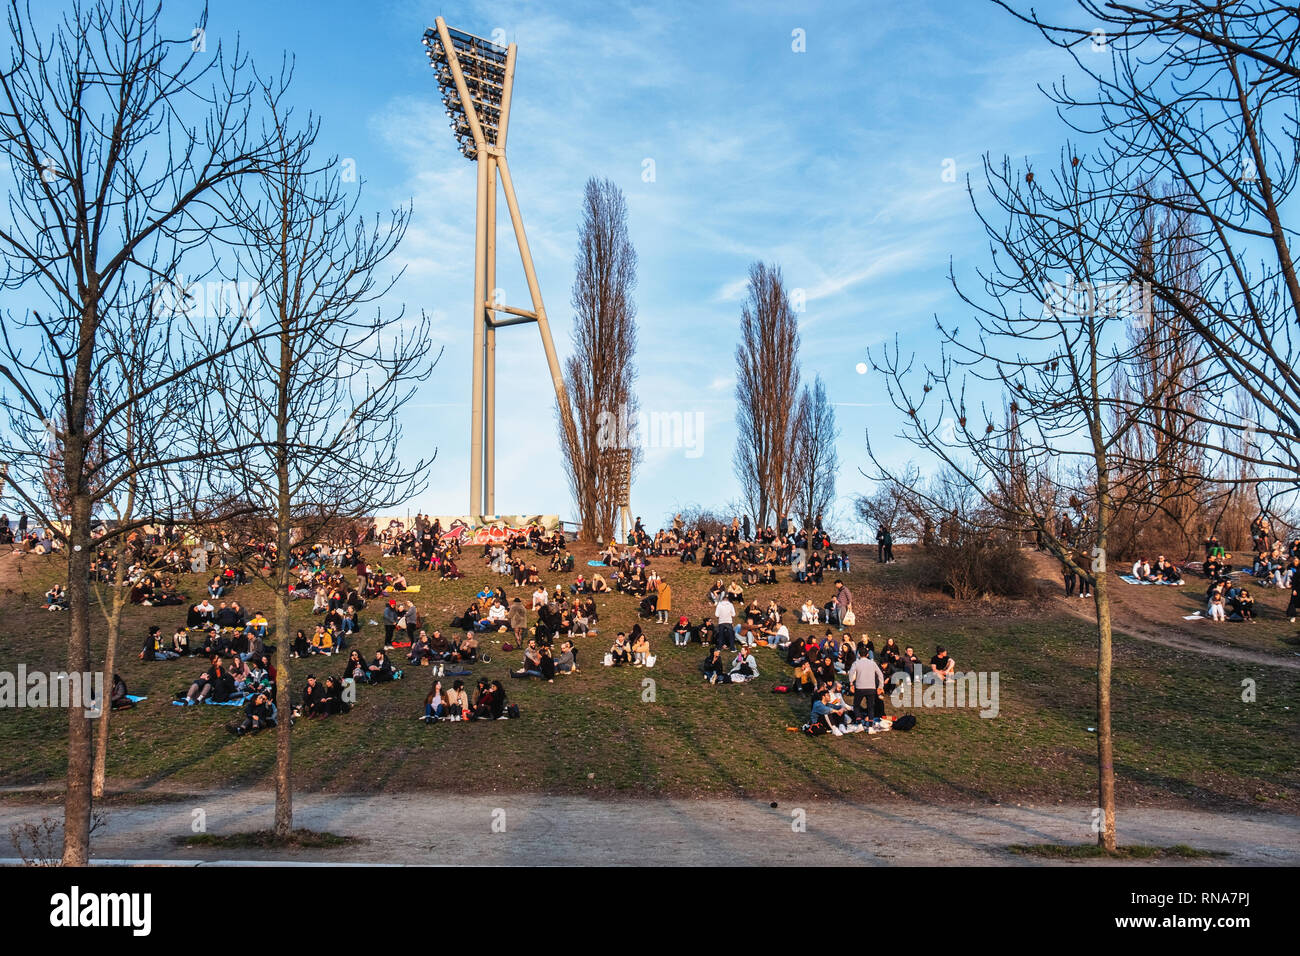 Mauer Park,Berlin, Germany, 17th February 2019. Berliners are enjoying a glorious Spring-like weekend in the middle of February - normally the second coldest month of the year. People relax in Mauerpark and enjoy the blue skies, sunshine and unseasonal warmer weather. Credit: Eden Breitz/Alamy Live News - Stock Image